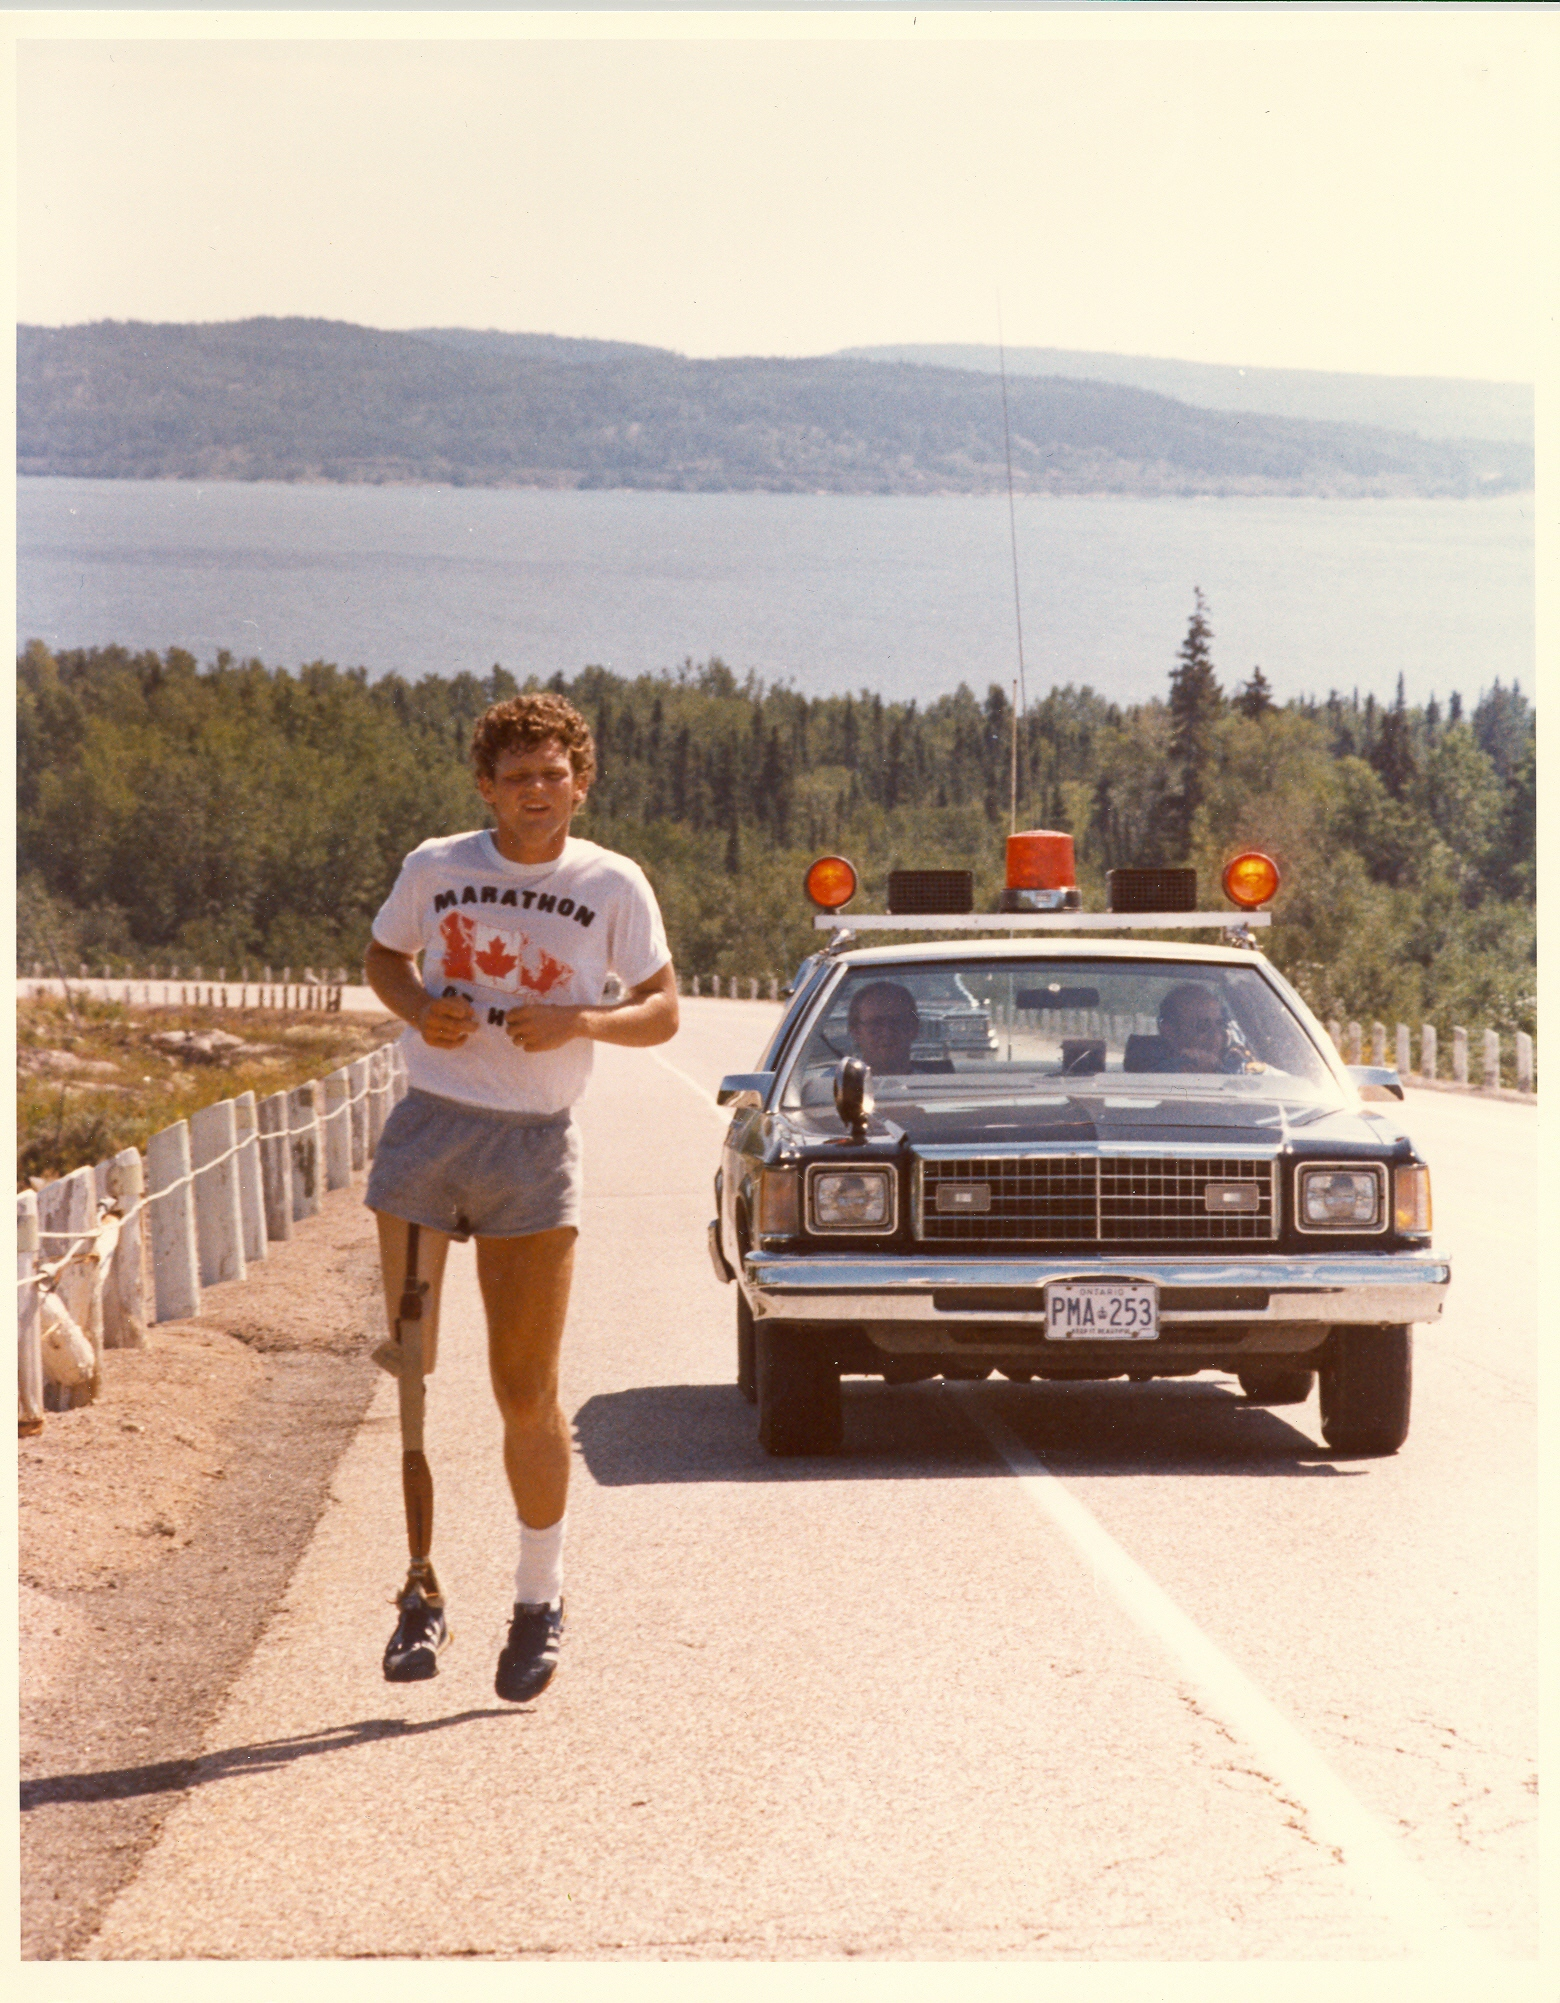 Terry Fox sur la route